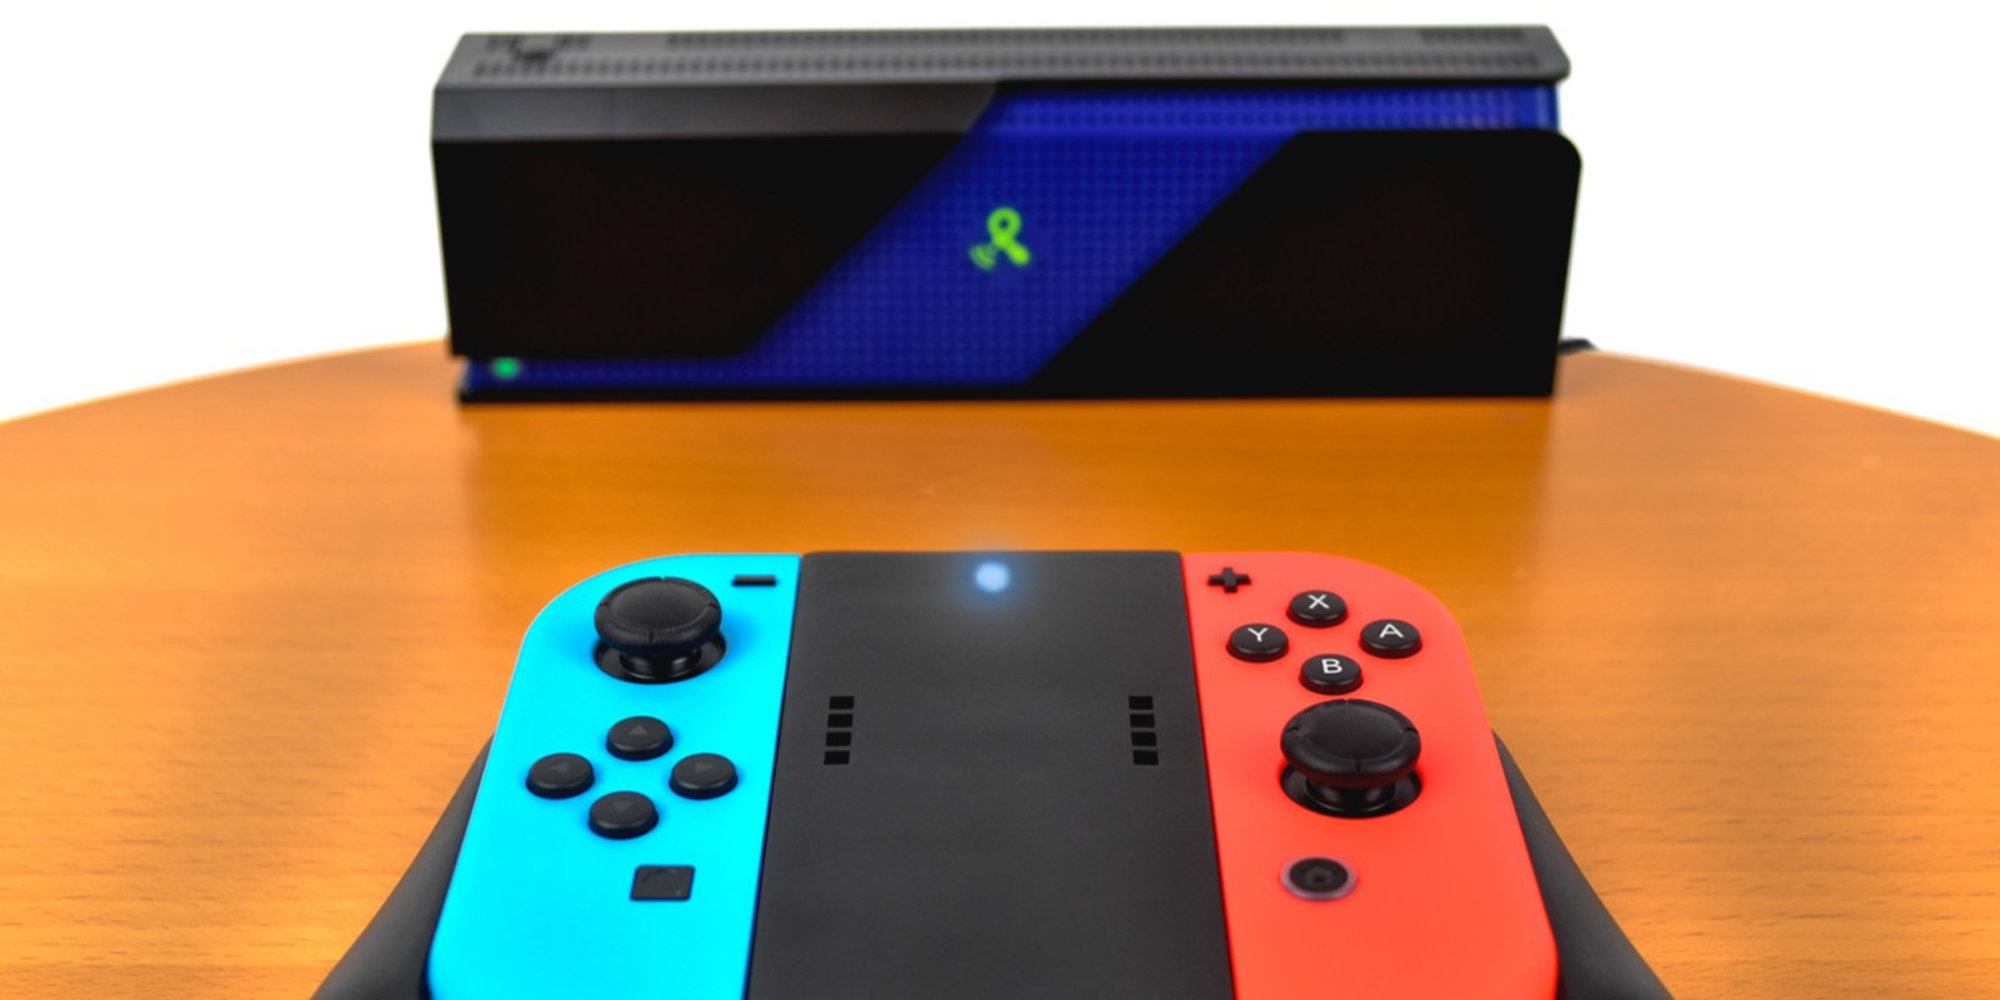 Powercast's Joy-Con grips charge without a cable or mat and offer 38 hours of gameplay